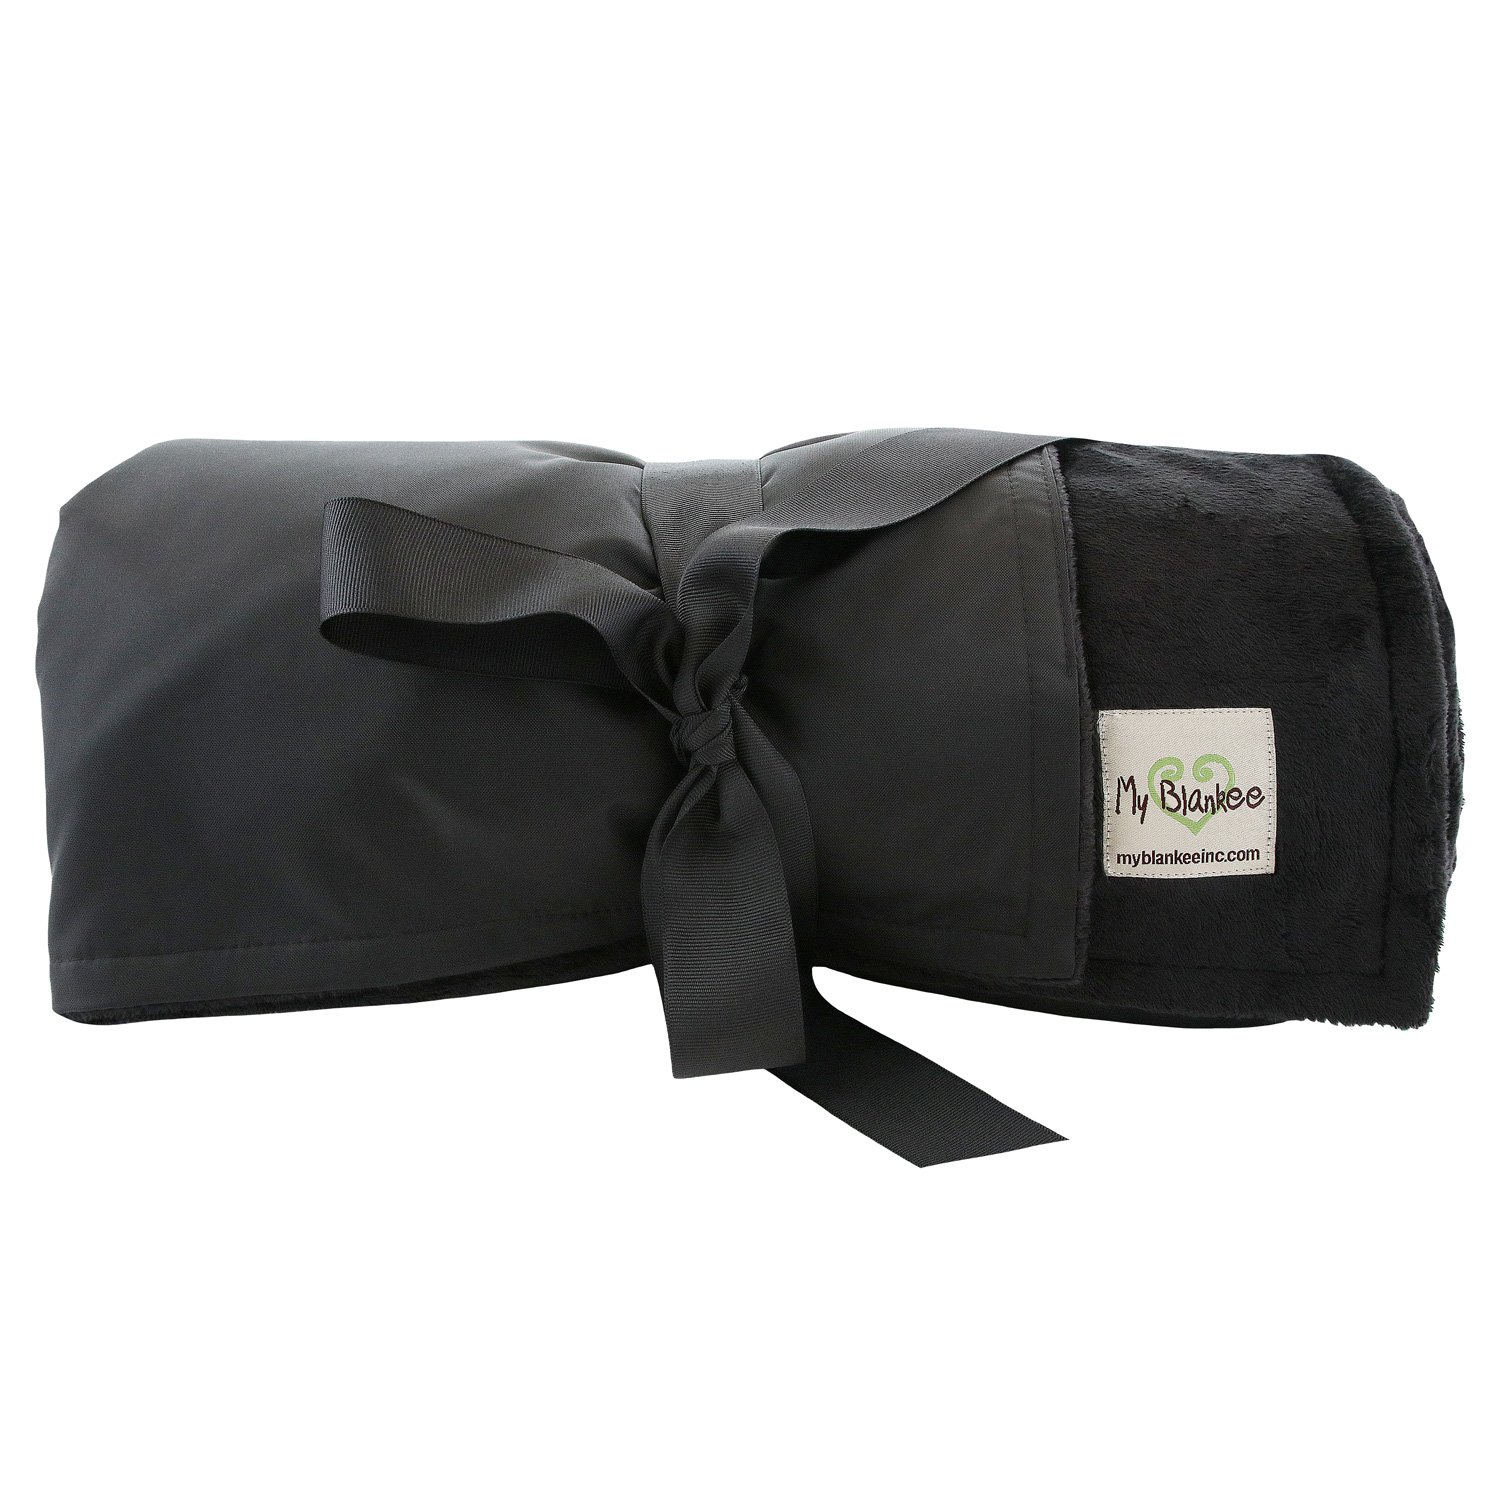 My Blankee Extra Large Picnic & Outdoor Blanket Warm and Soft Minky with Waterproof Backing, Black, 59'' X 85''